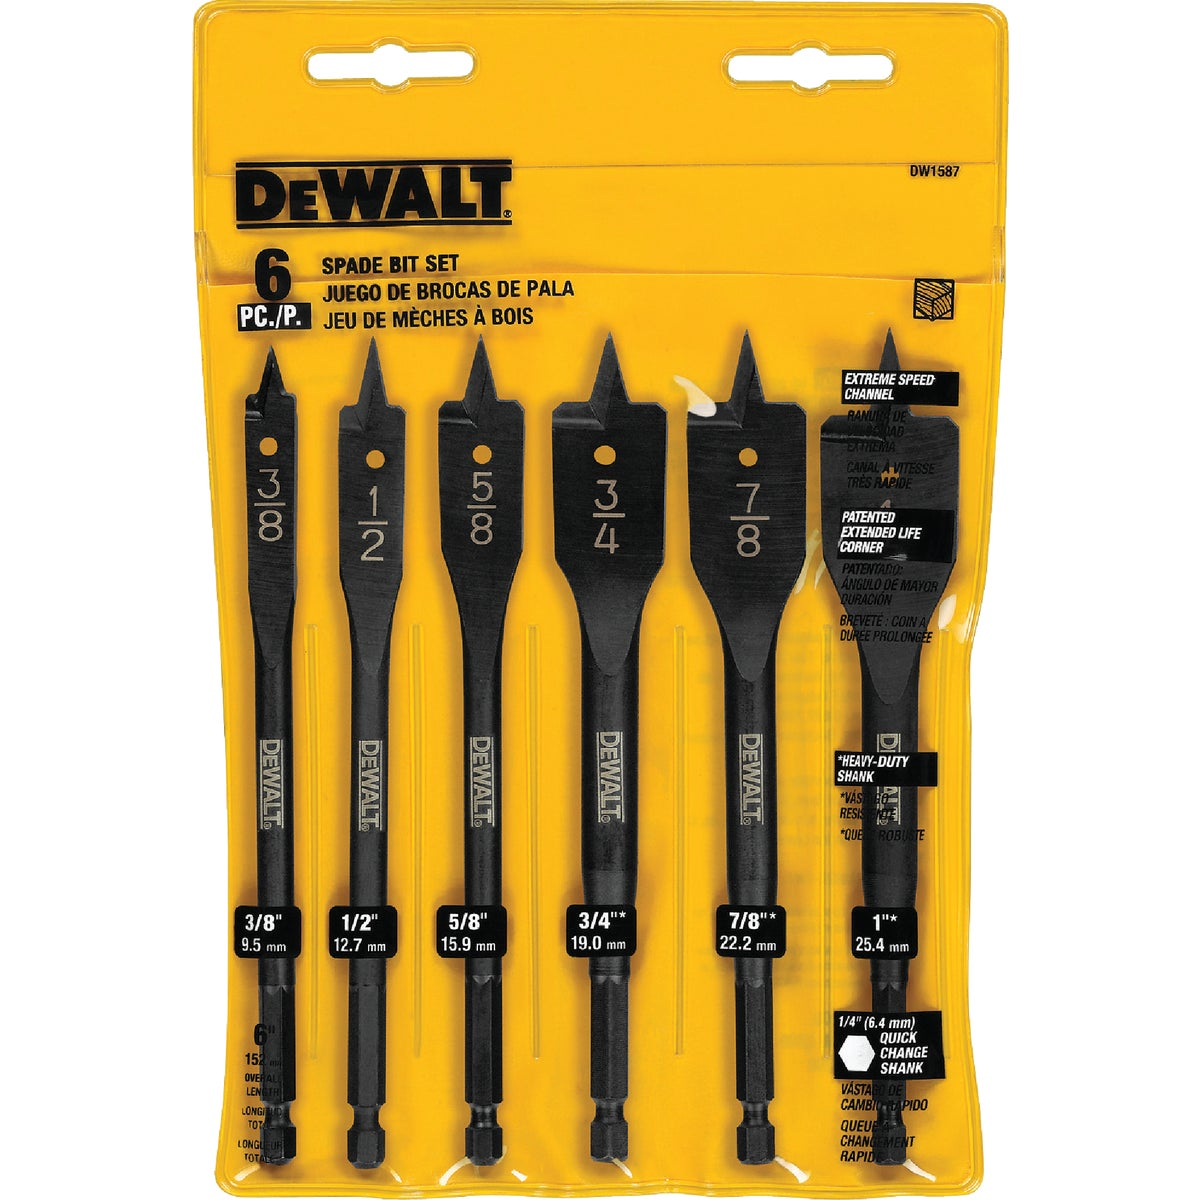 Black & Decker/DWLT 6PC SPADE BIT SET DW1587